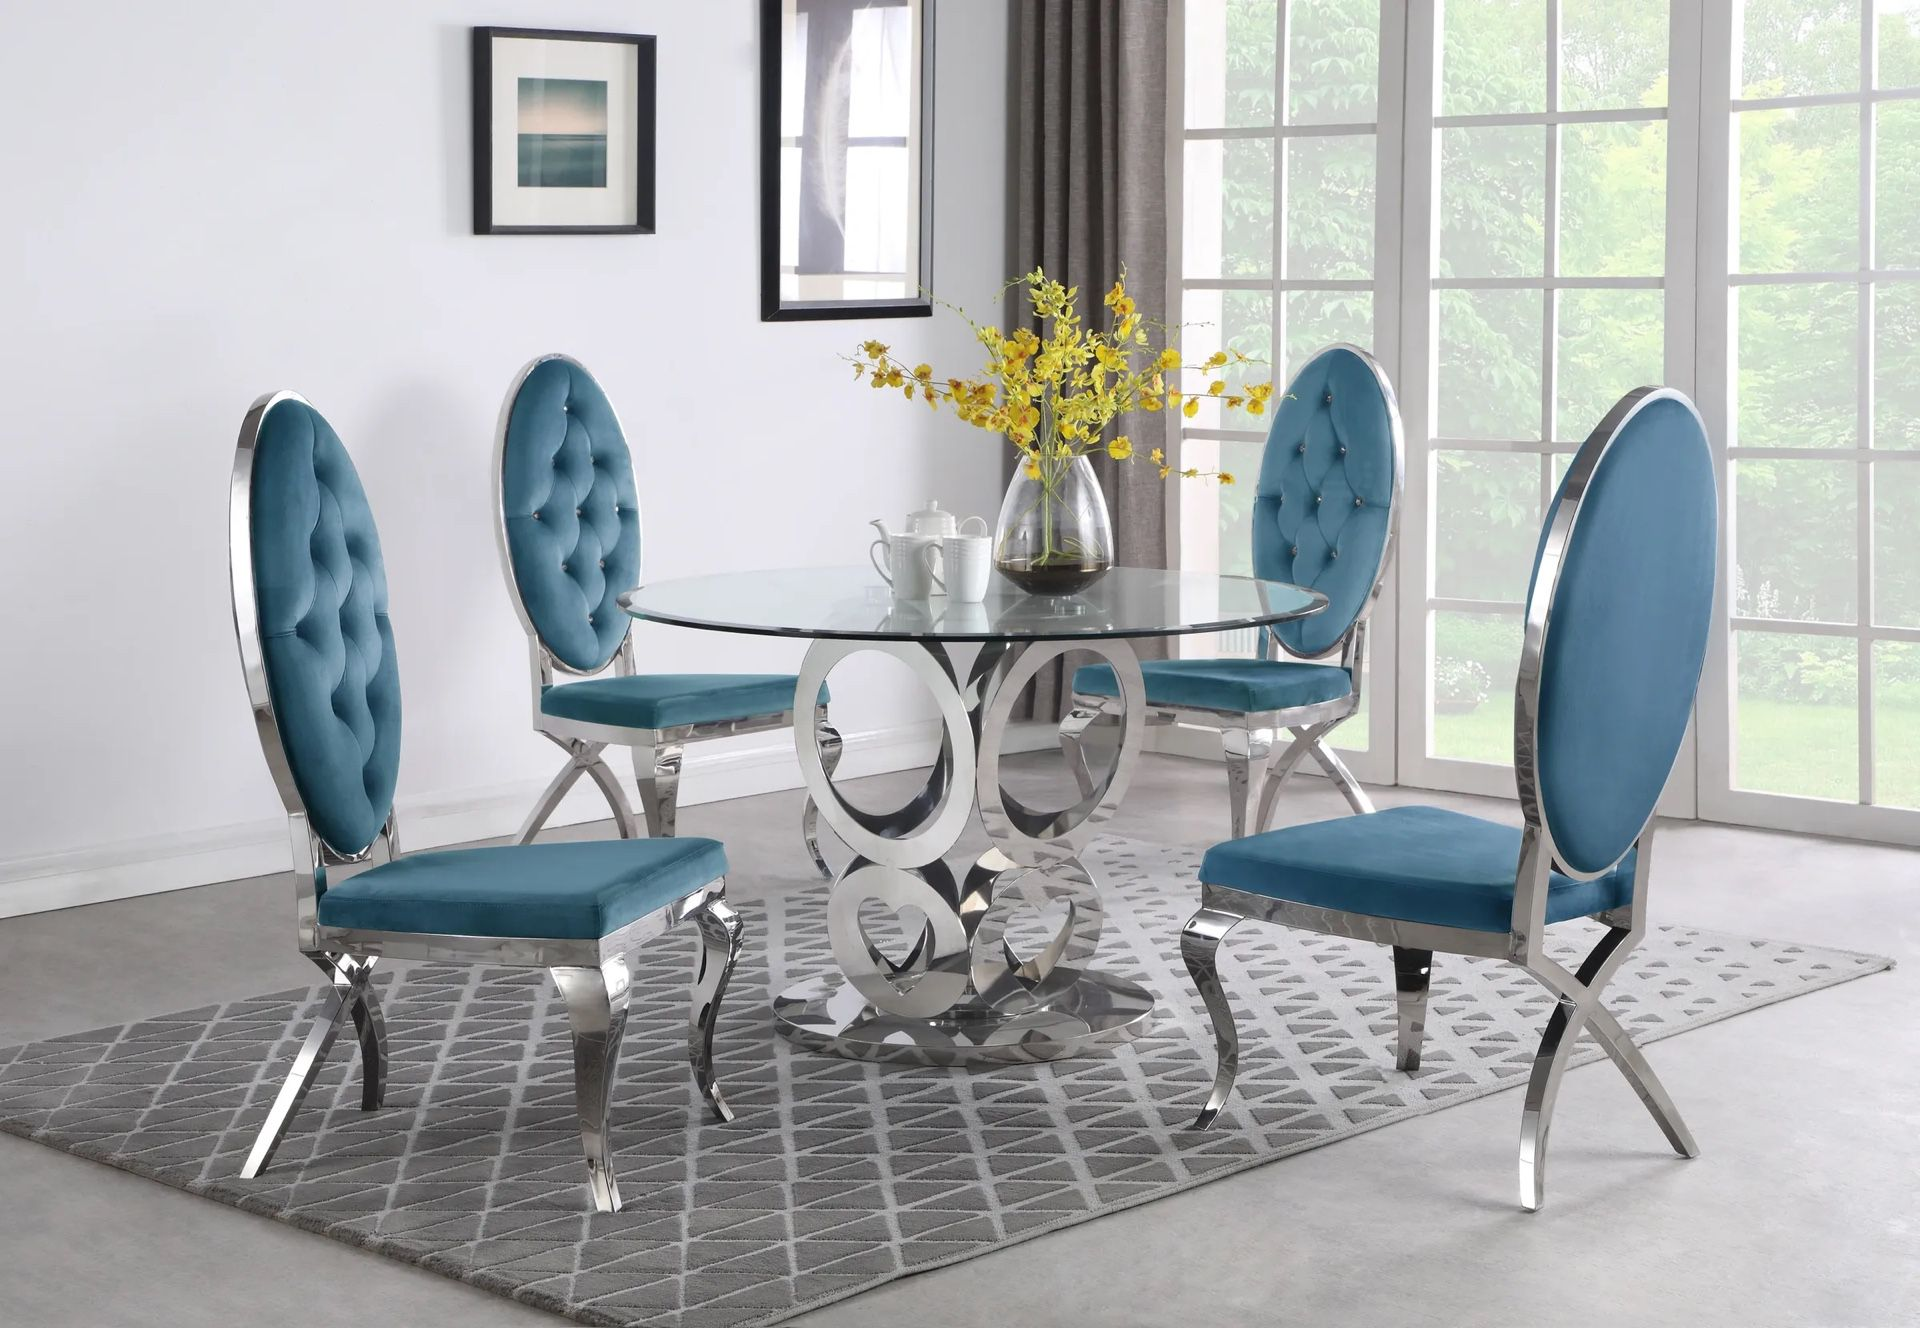 5 PCS Victorine II Collection Dining set-available in 3 colors-available also with gold frame $1,879.00 Hot Buy! Free Delivery 🚚